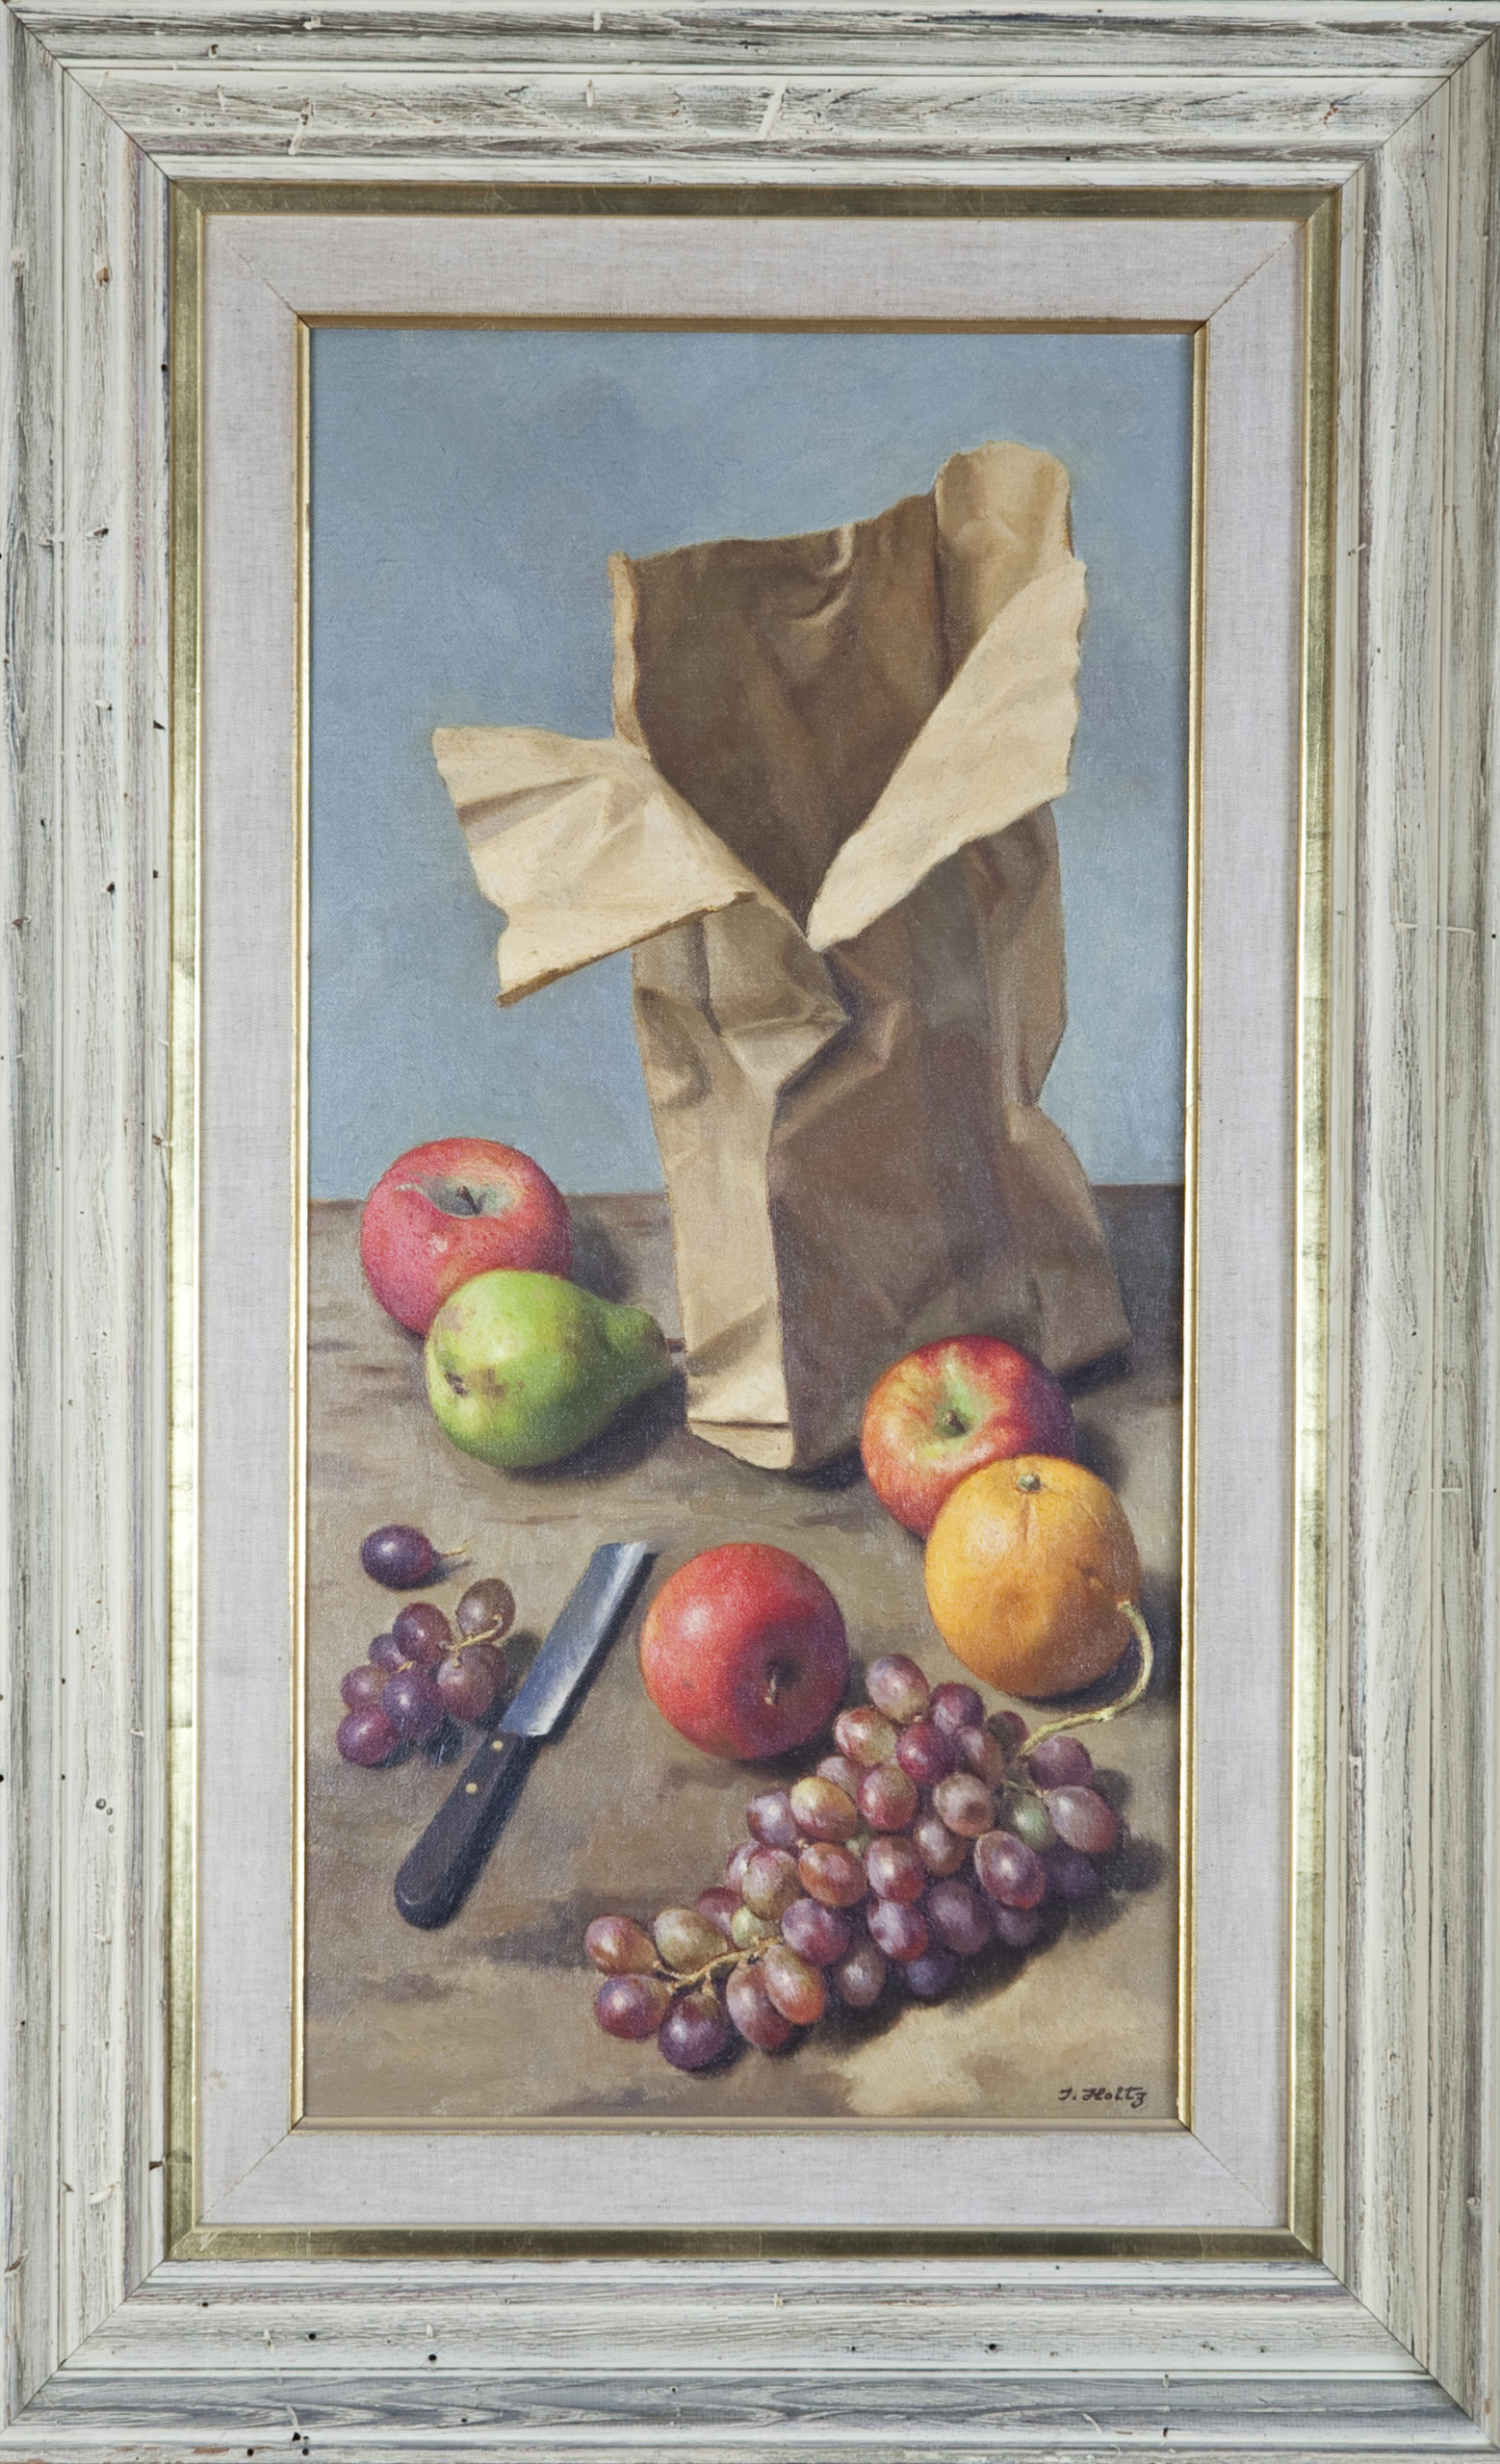 124 Paper Bag and Fruit 1965 - Oil on Canvas - 12 x 24 - Frame: 22.25 x 32.25 x 3